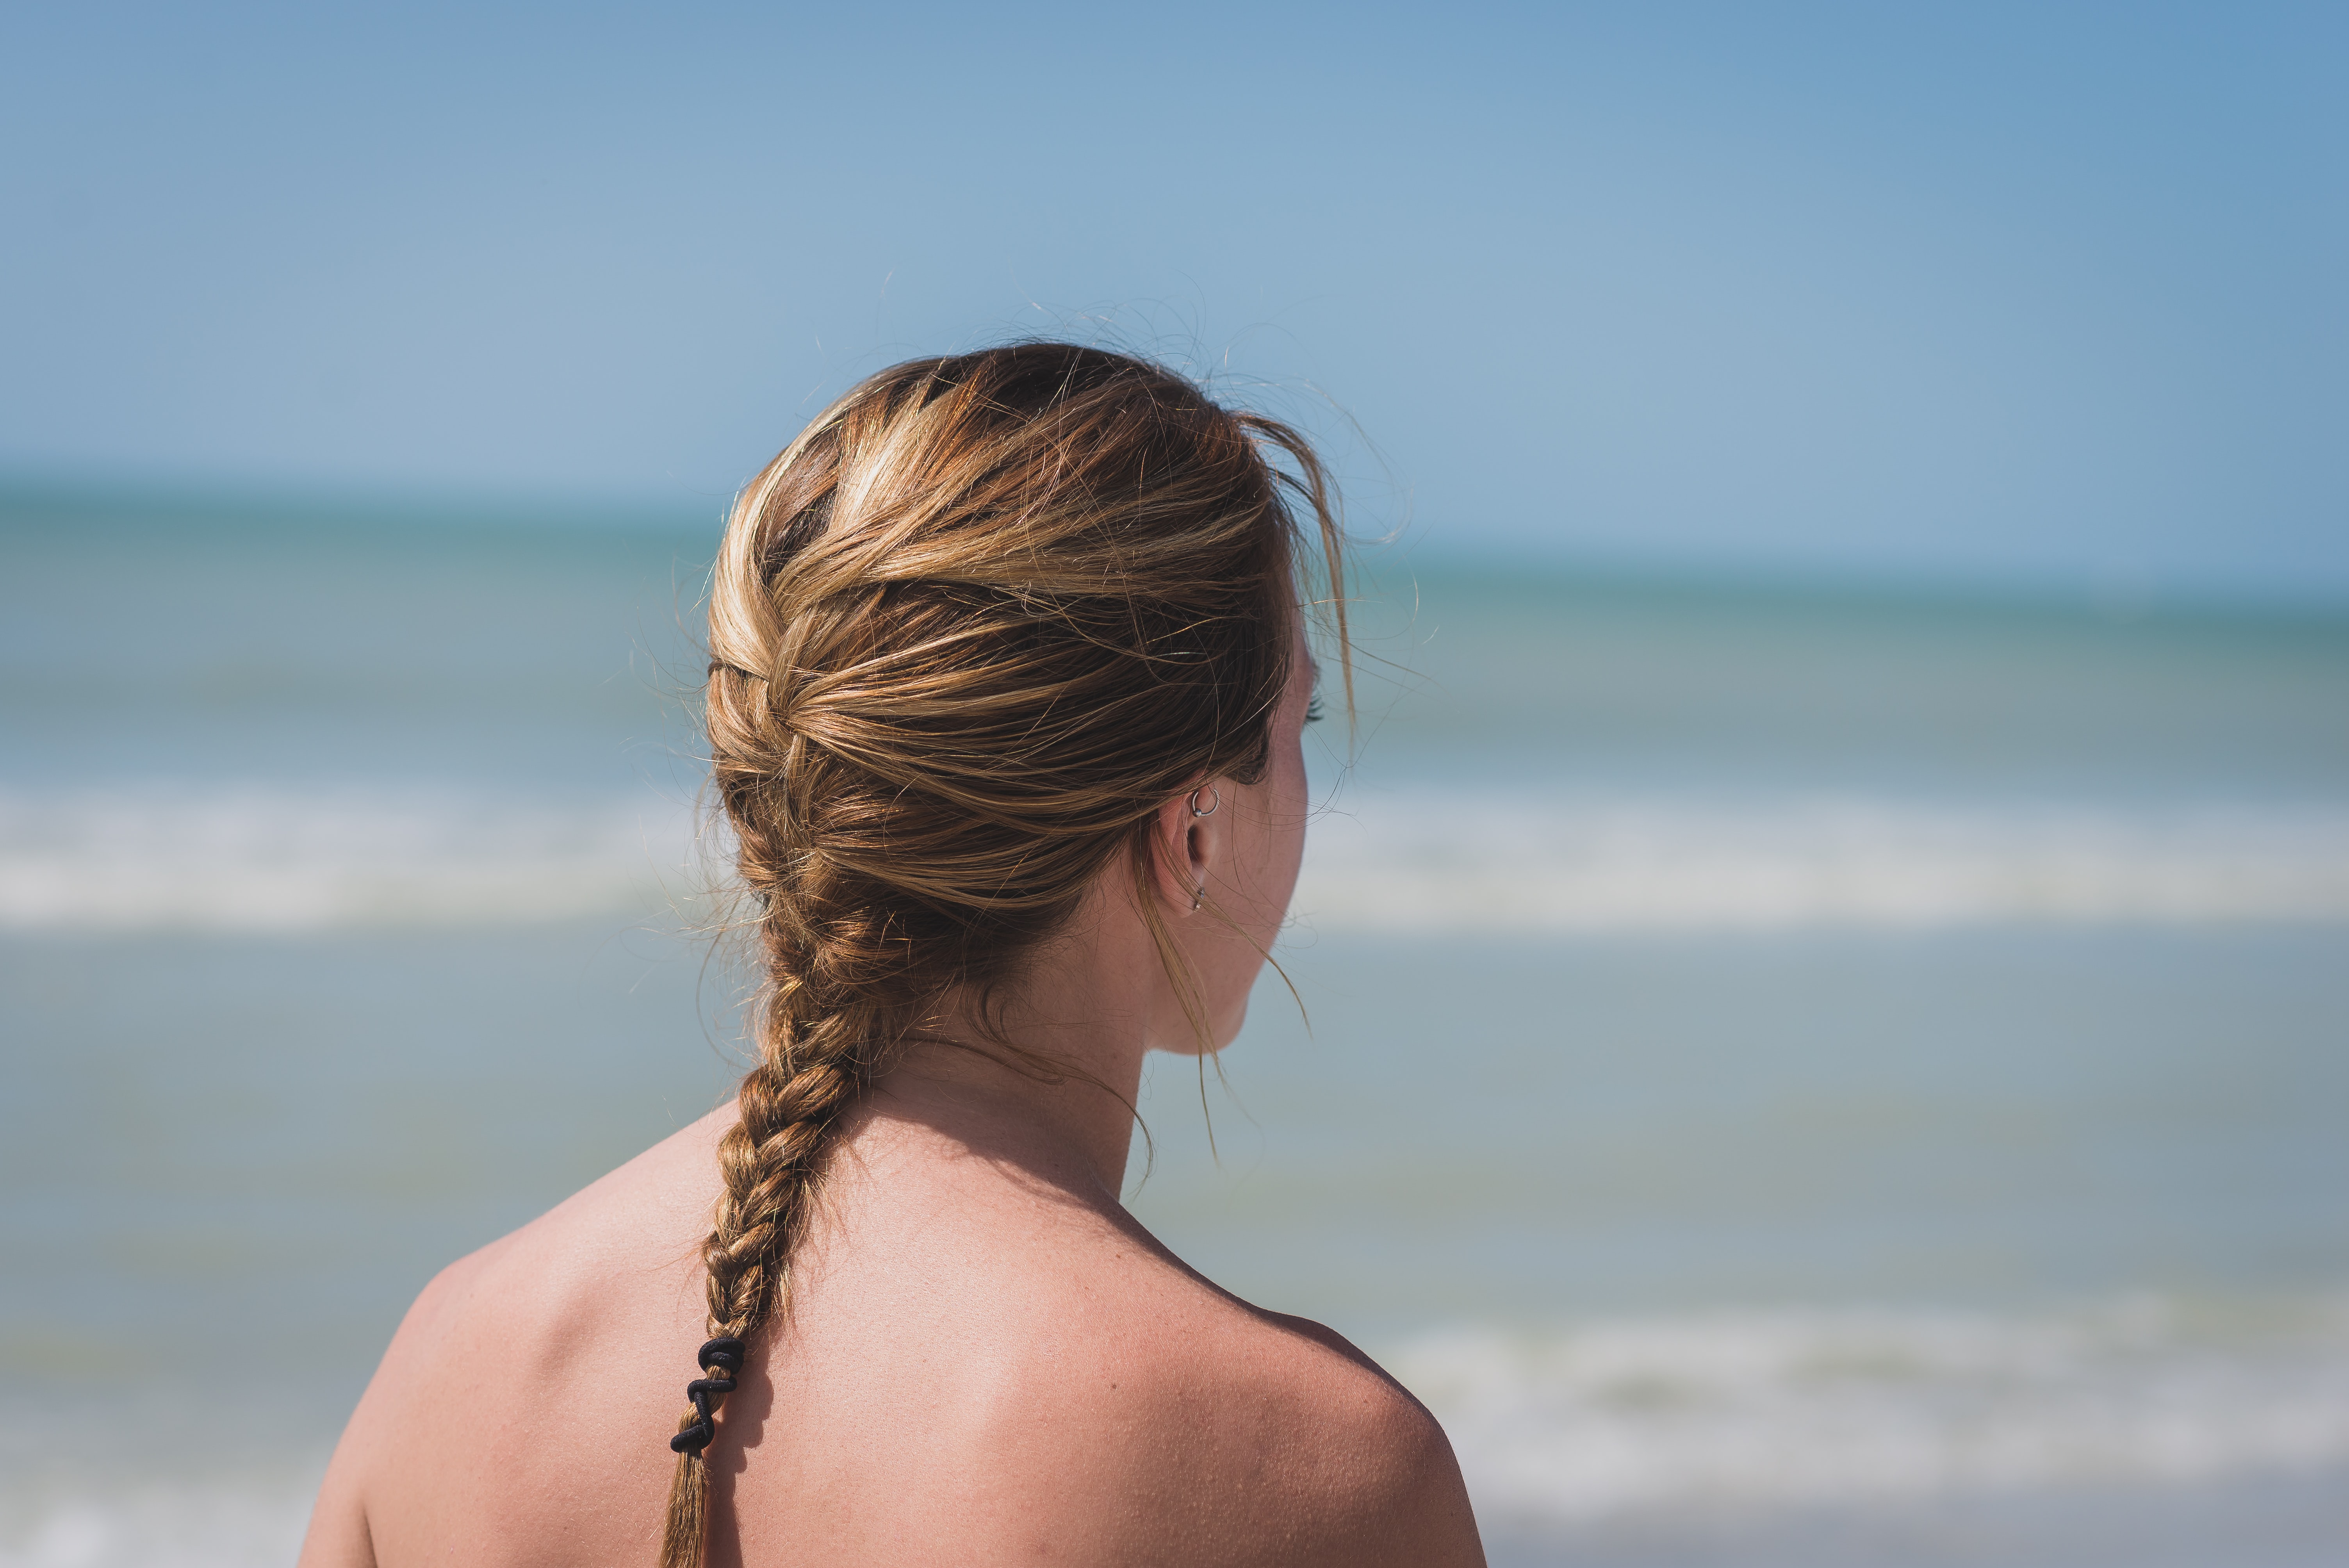 back view photo of woman with braided hair near sea